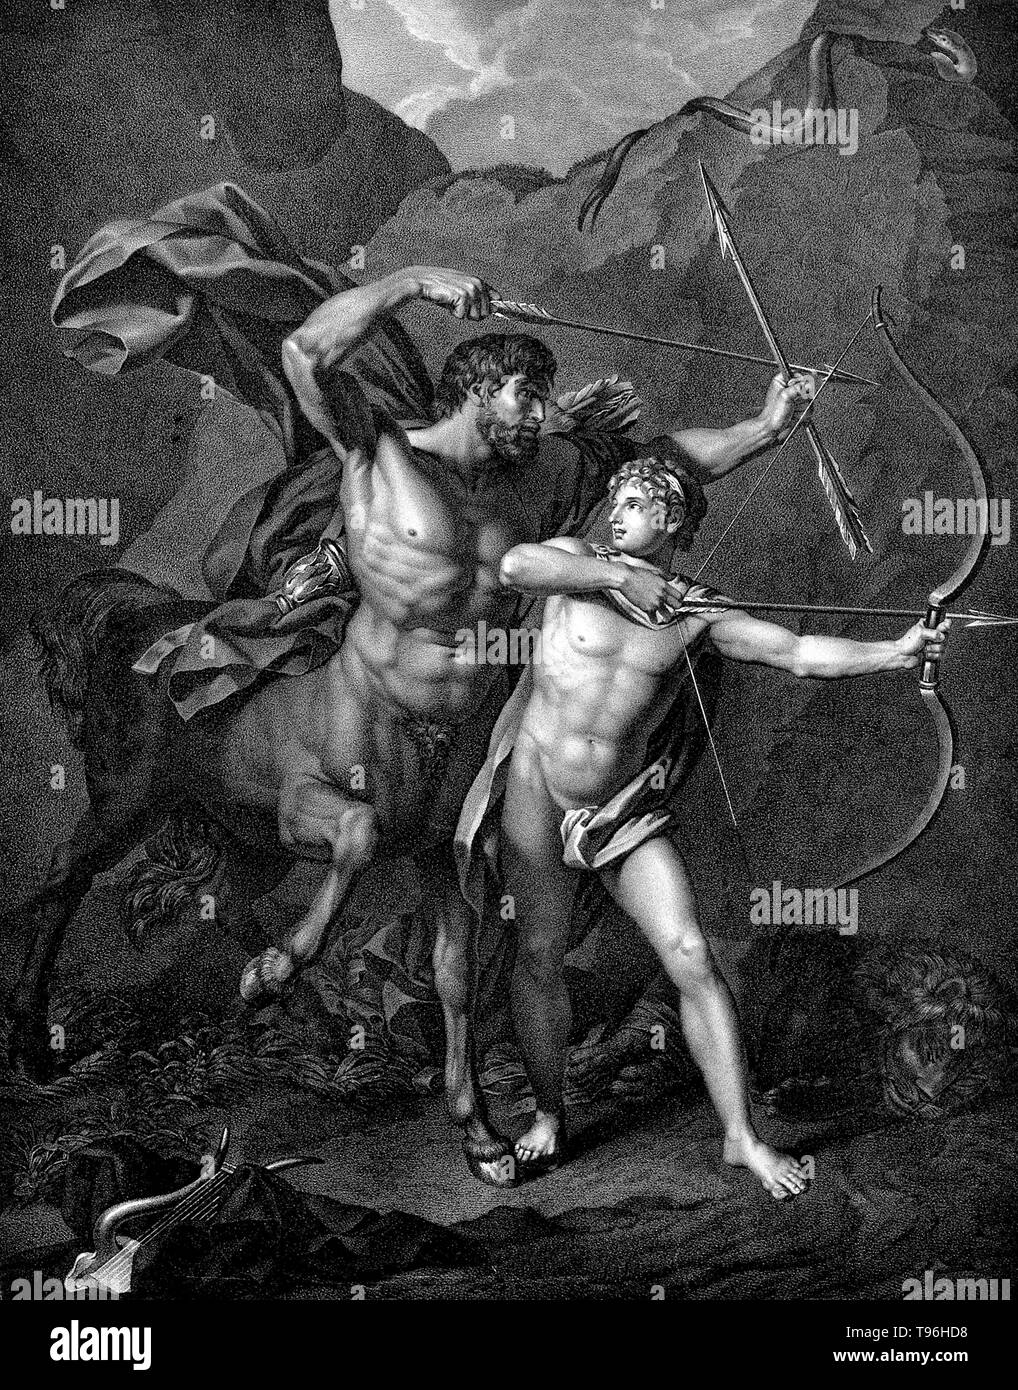 Chiron and Achilles. Chiron (Kheiron) was the eldest and wisest of the Centaurs, a tribe of half-horse men. He was an immortal god, a son of the Titan Kronos (Cronus) and the nymph Philyra. While Kronos was coupling with Philyra his wife Rhea appeared so to escape notice he transformed himself into a horse, and in this way sired a half-equine son. Like the satyrs, centaurs were notorious for being wild and lusty, overly indulgent drinkers and carousers, given to violence when intoxicated, and generally uncultured delinquents. Chiron, by contrast, was intelligent, civilized and kind, but he was - Stock Image